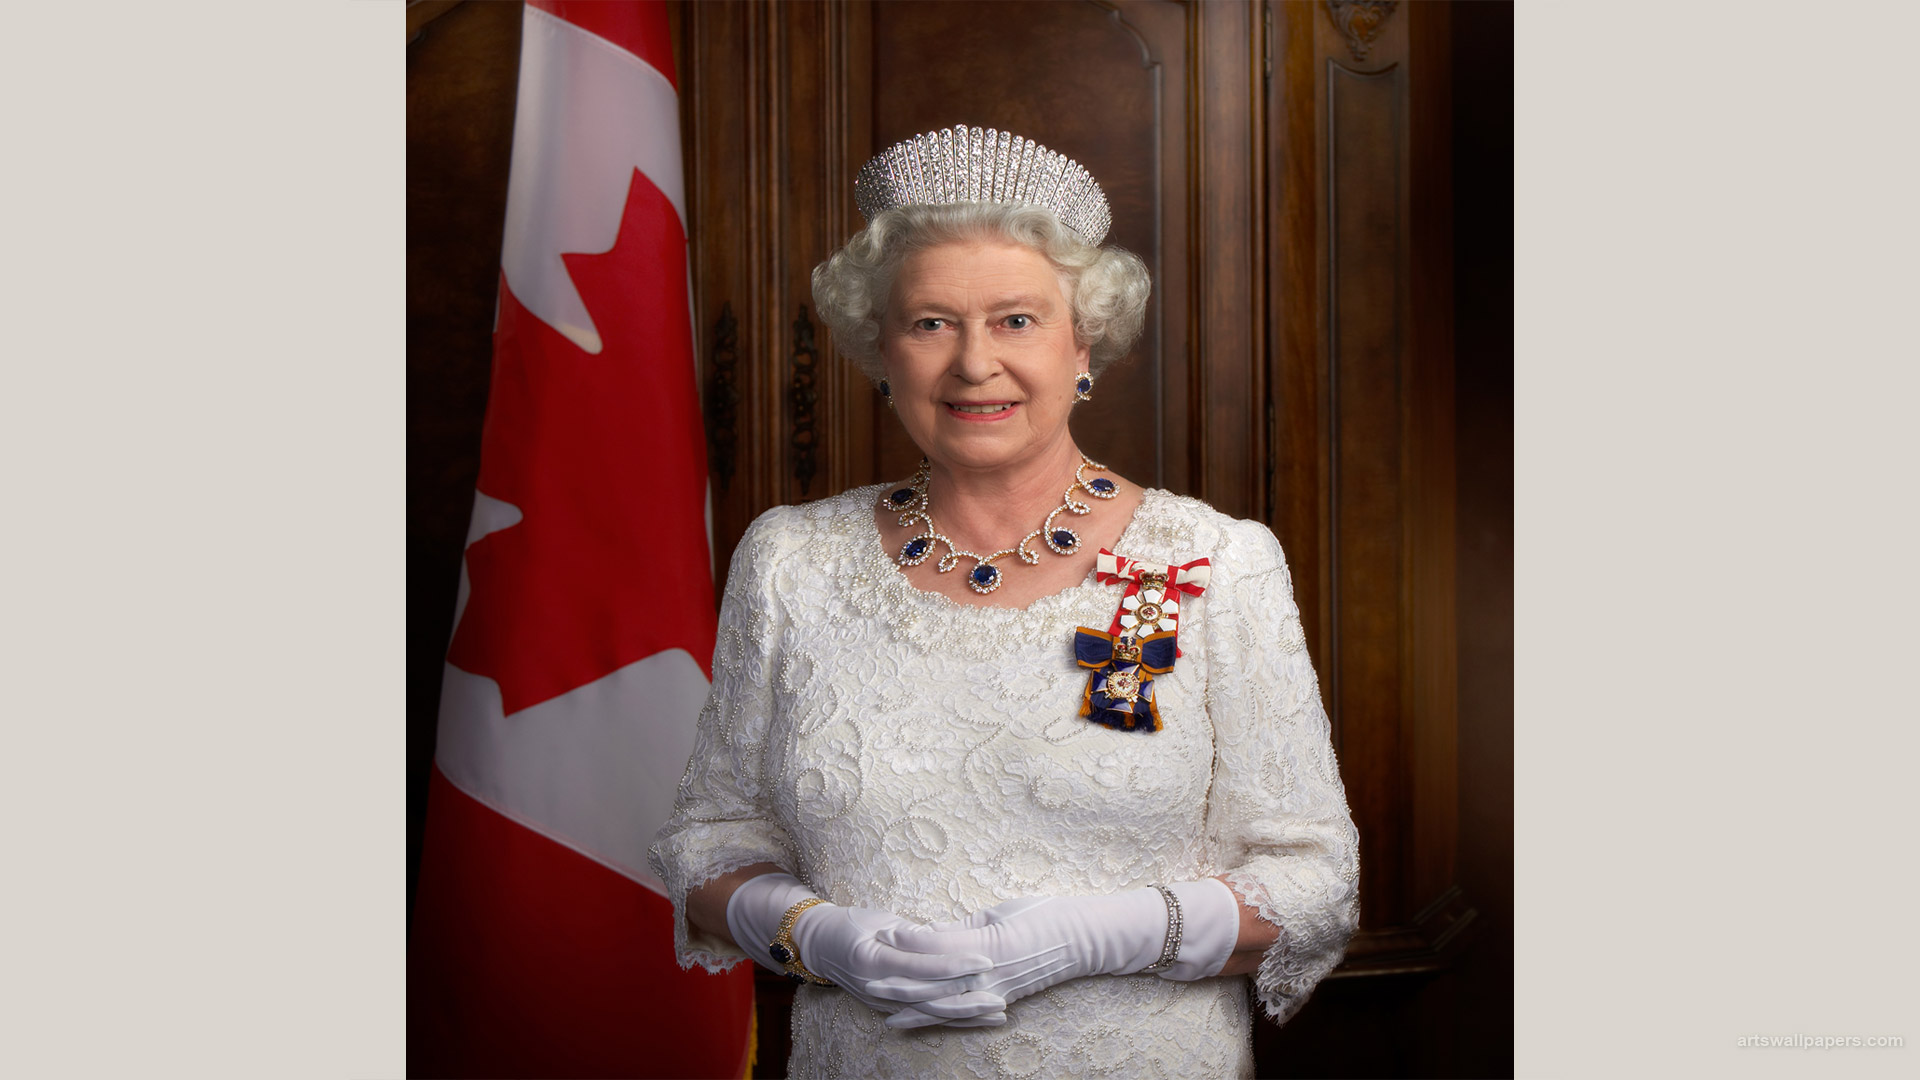 ueen elizabeth Alternative titles: elizabeth alexandra mary, elizabeth ii, by the grace of god, of the united kingdom of great britain and northern ireland and of her other realms and territories queen, head of the commonwealth, defender of the faith prince william and catherine middleton: the royal wedding of .